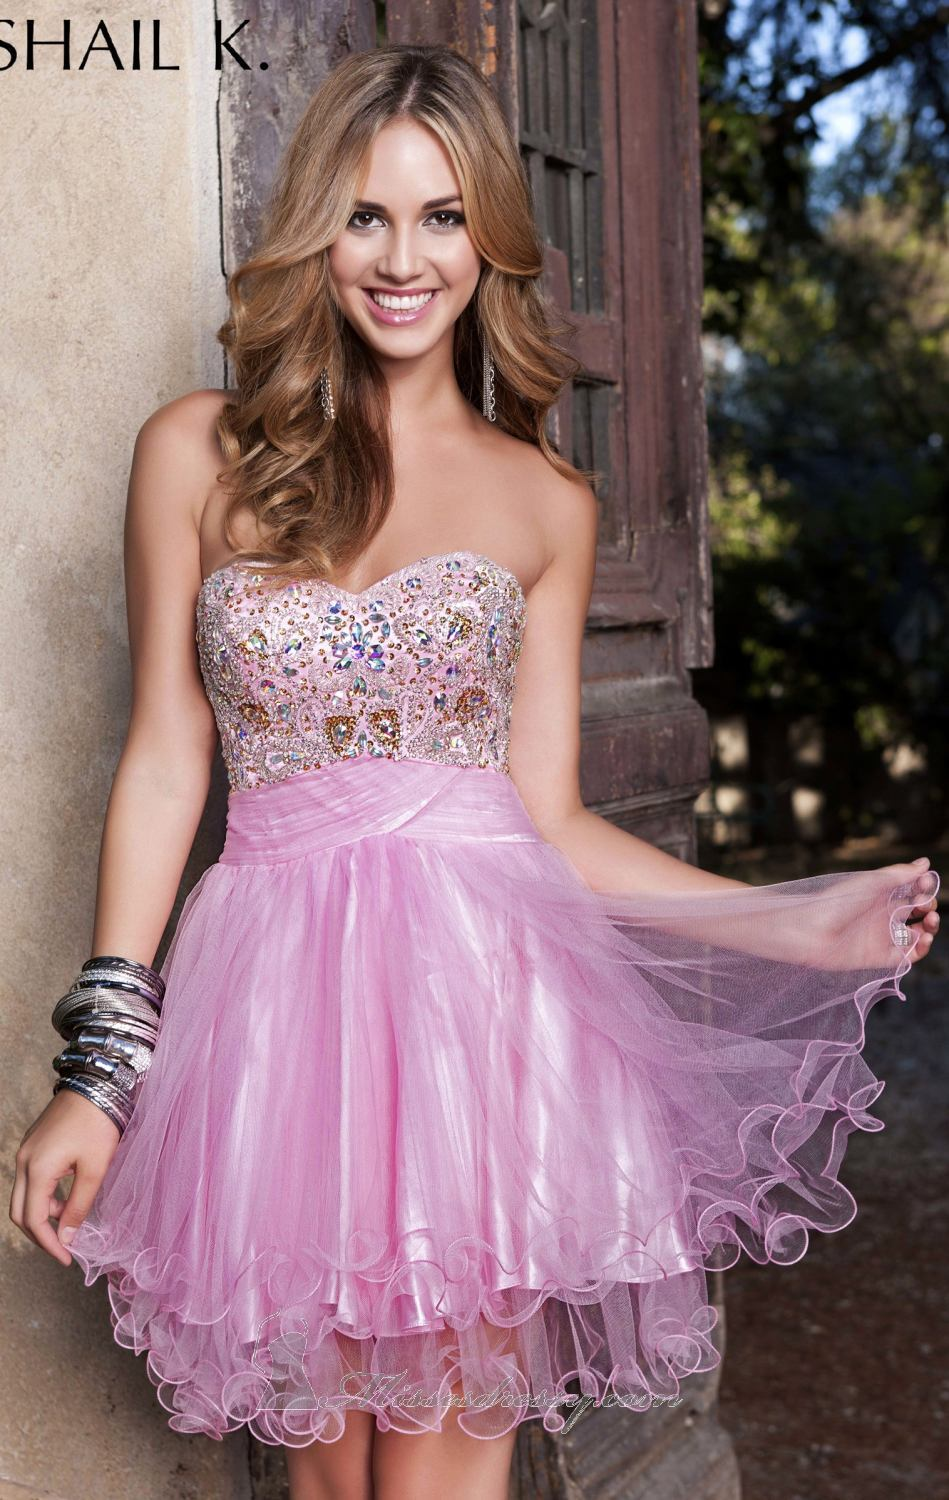 Superb Seductive 2015 New Arrival Beading Short Homecoming Dresses Grade Homecoming Dresses From Weddings Events On Seductive 2015 New Arrival Beading Short Homecoming Dresses